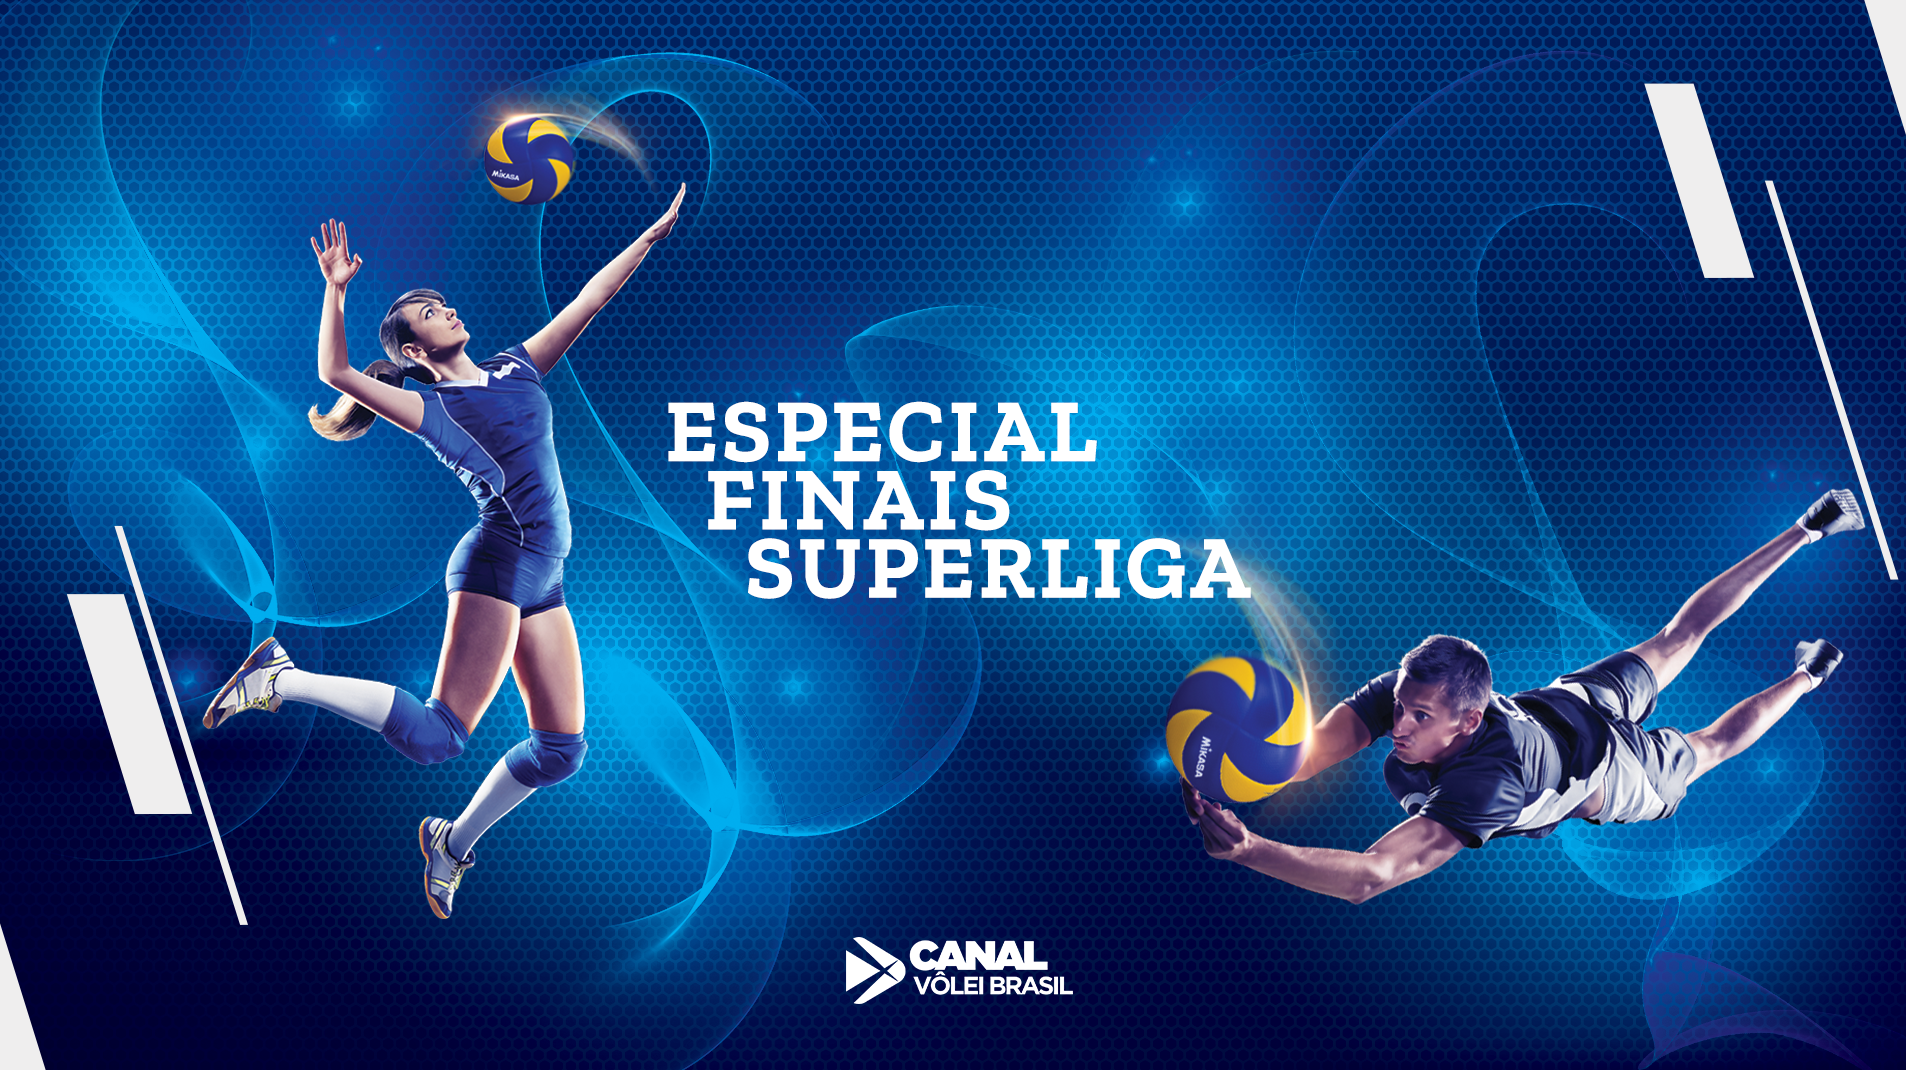 Especial Finais Superliga